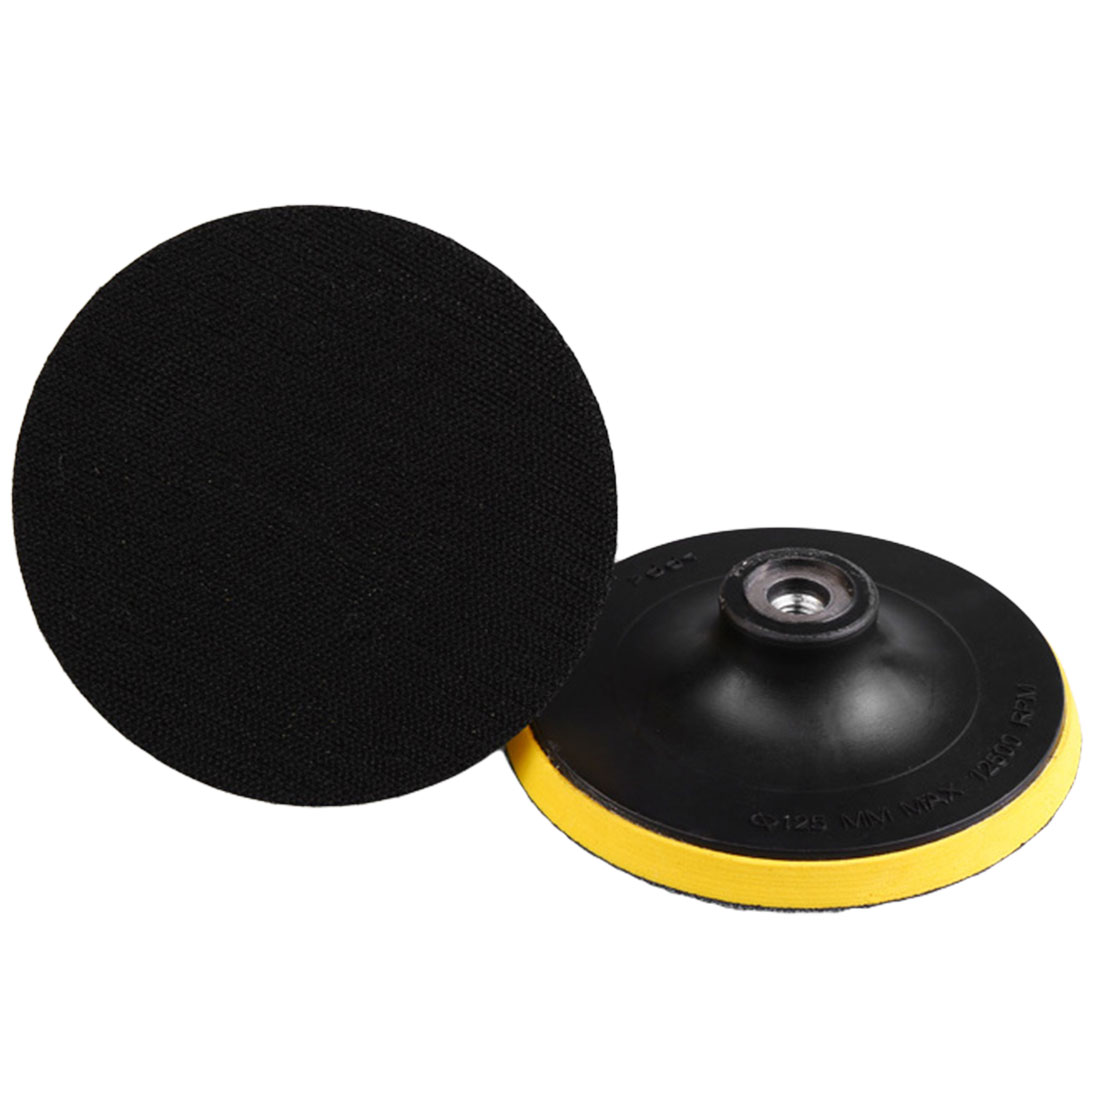 Self-adhesive Sand Paper Pad Sander Disc Disk Sandpaper For Electric Grinder Polisher Machine Polishing Disc Abrasive Tool